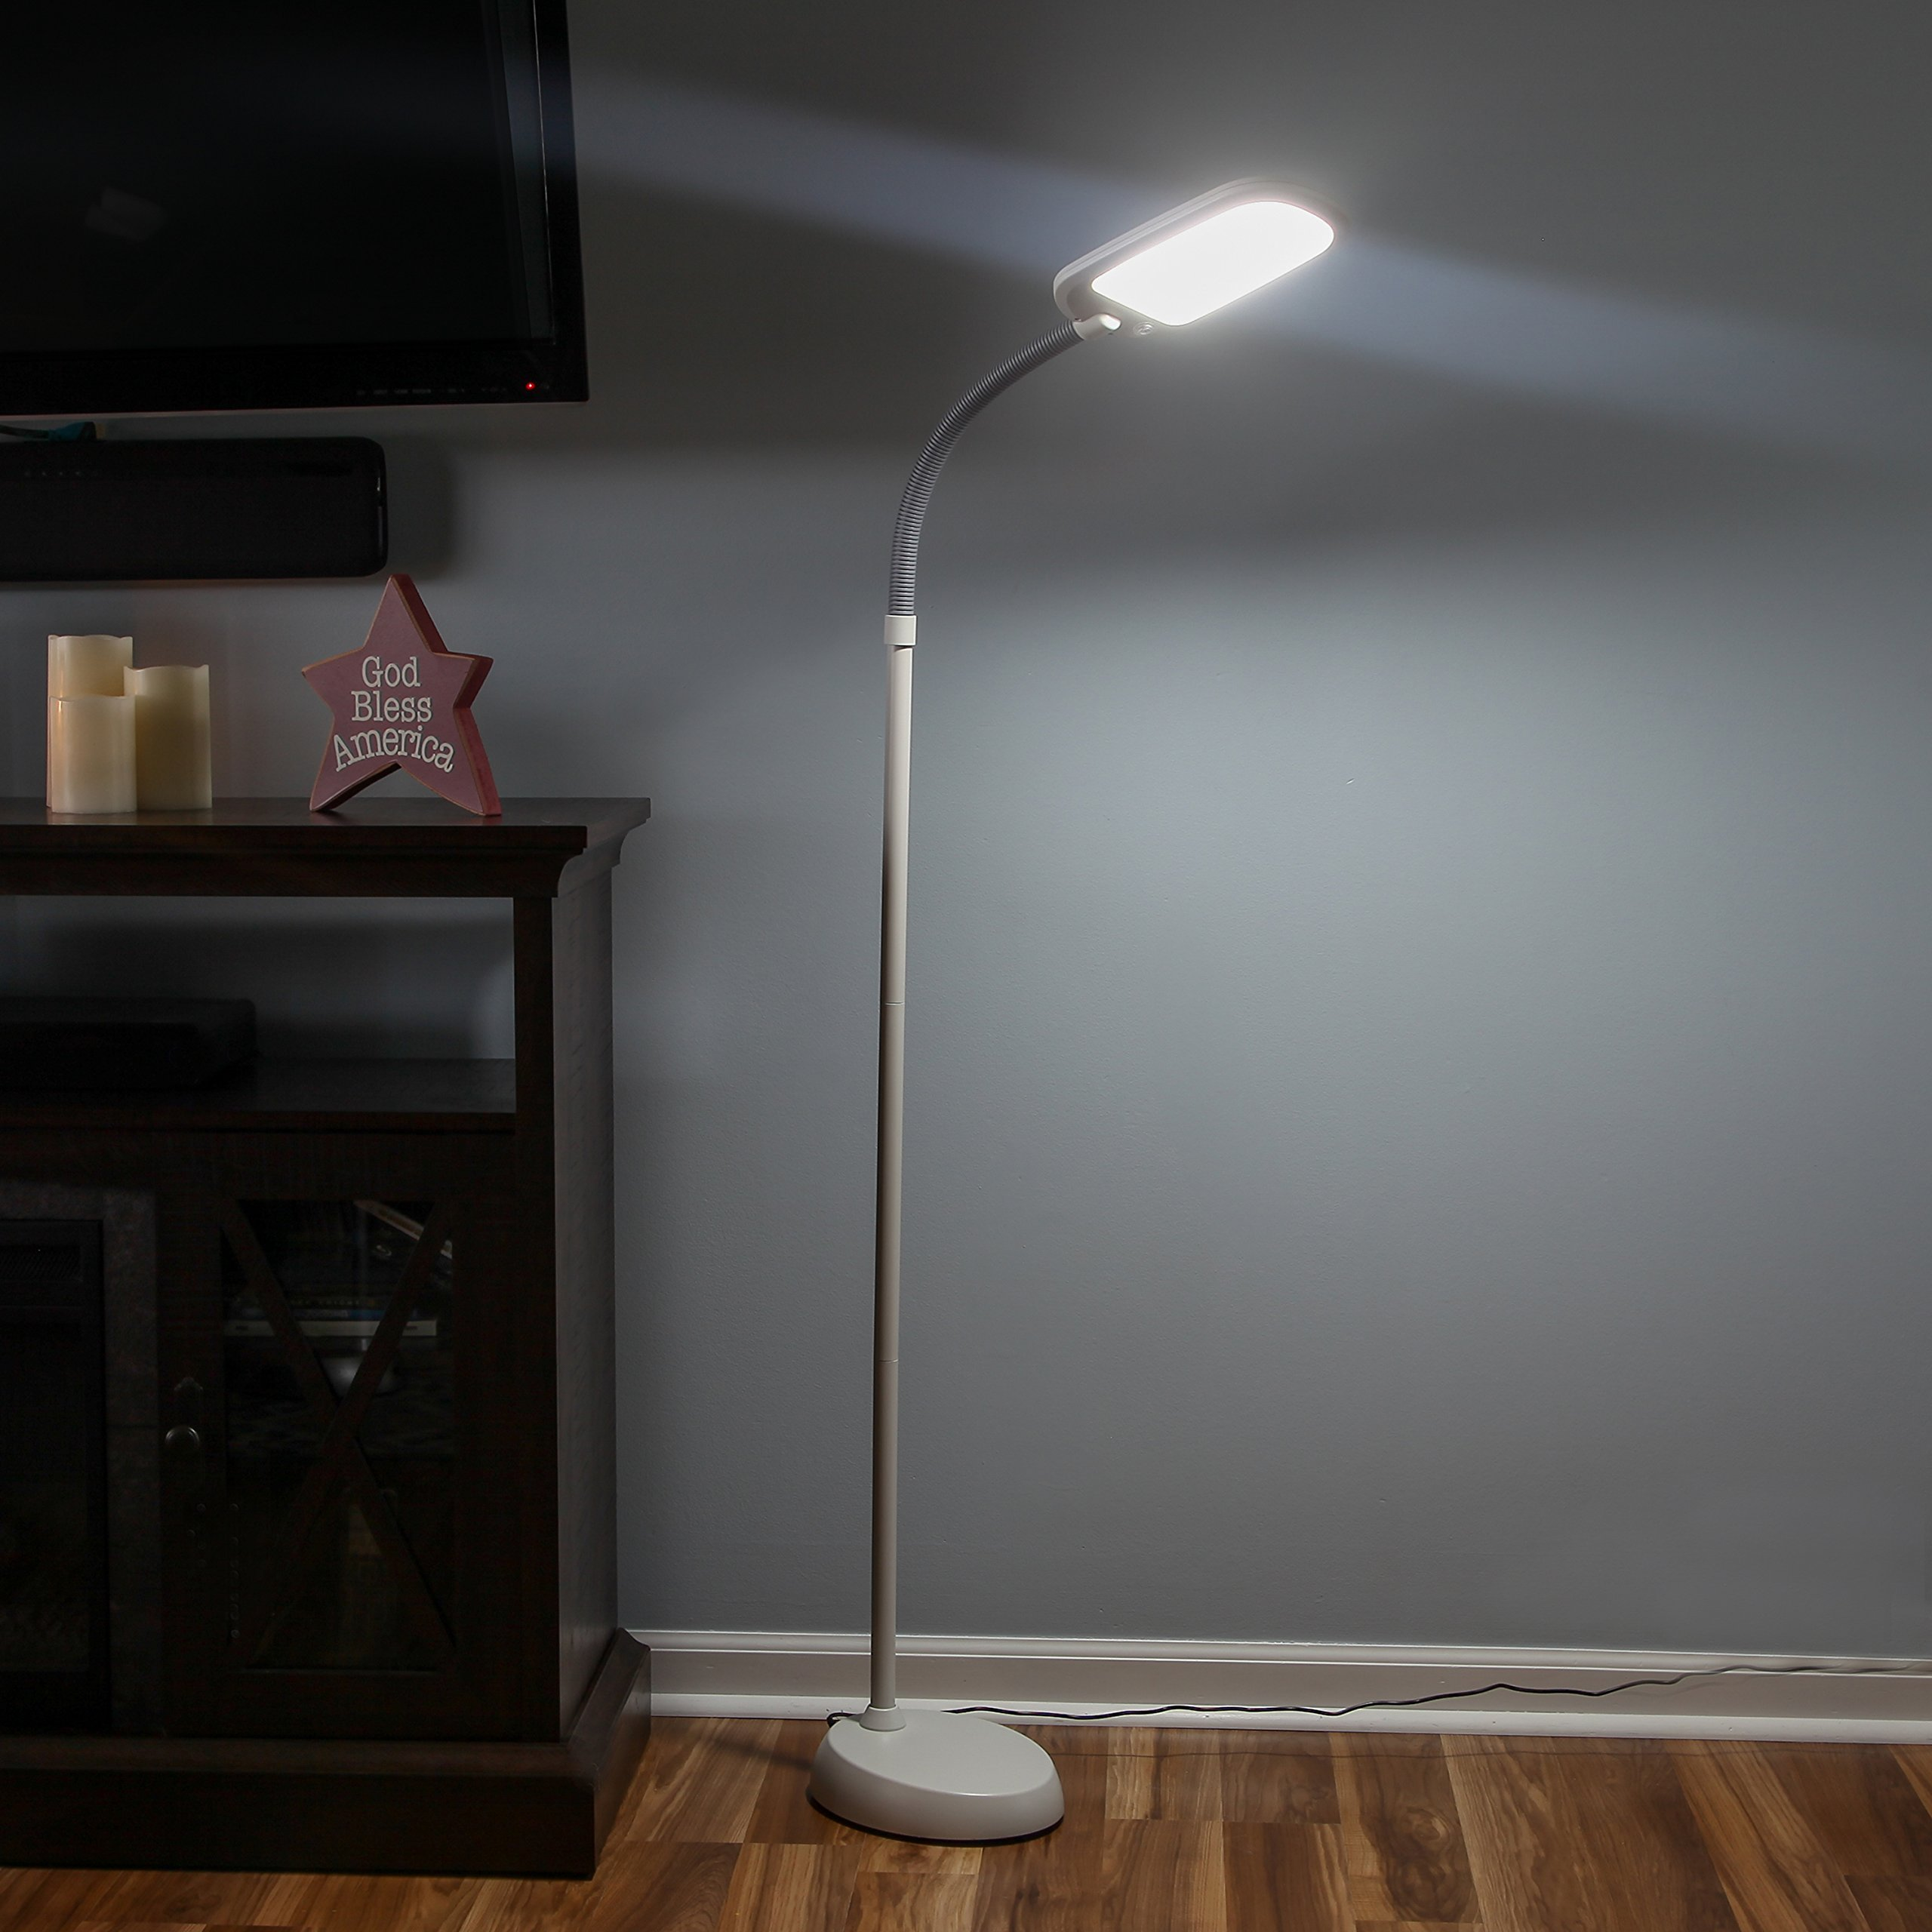 Brightech Litespan 2nd Edition LED Reading & Craft Floor Lamp - Dimmable & Light Color Adjustable with Touch Switch - Standing Tall Pole Task Lamp with Gooseneck for Office - Alpine White by Brightech (Image #6)